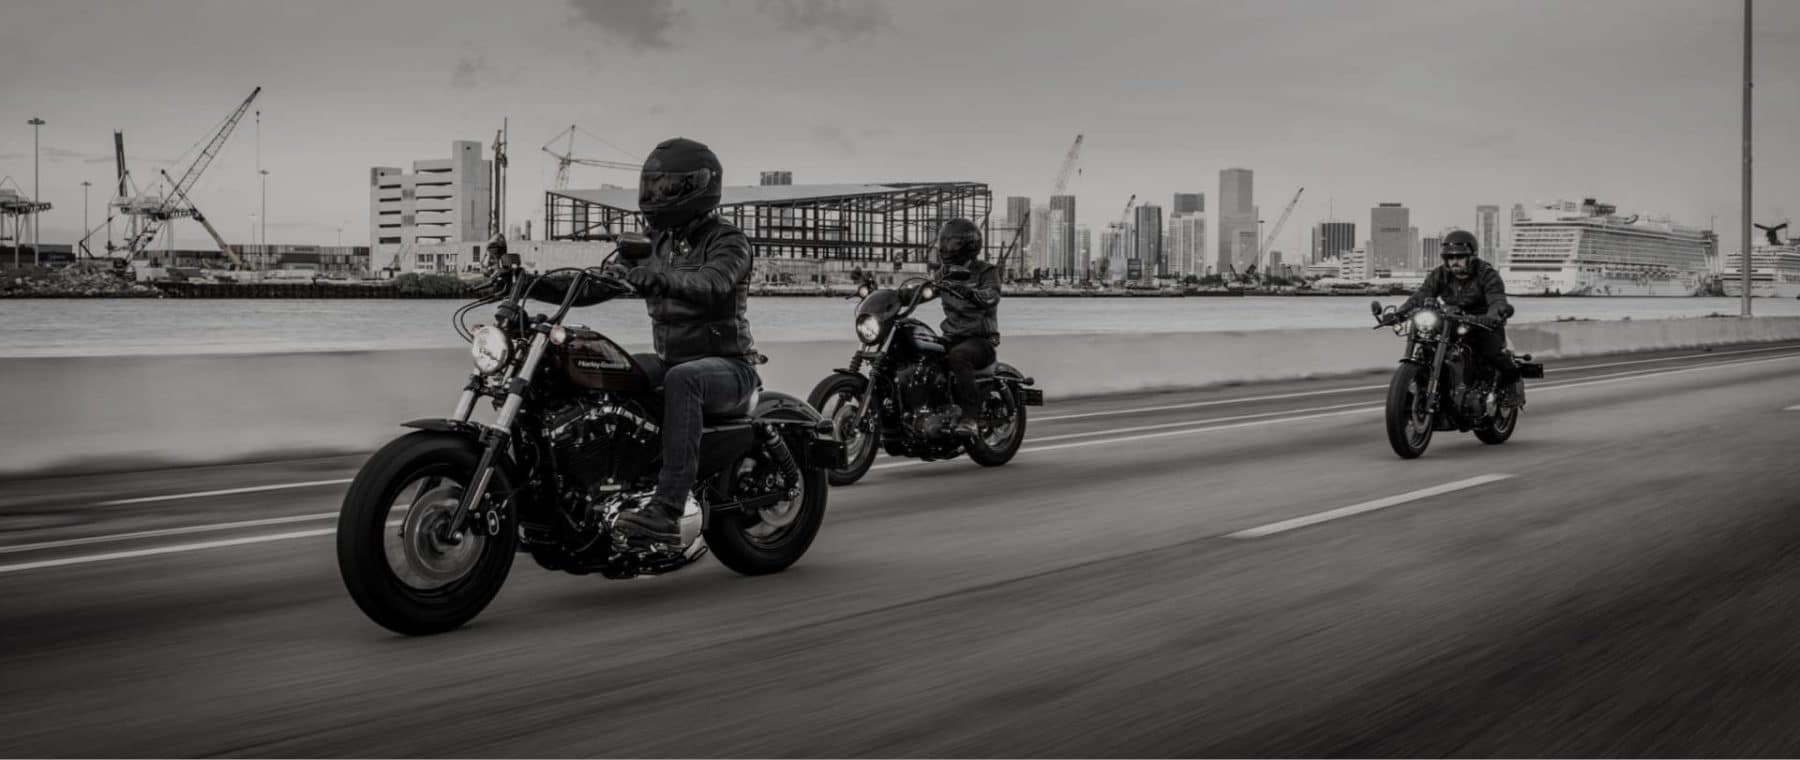 Three motorcyclists riding past a dockside in grayscale